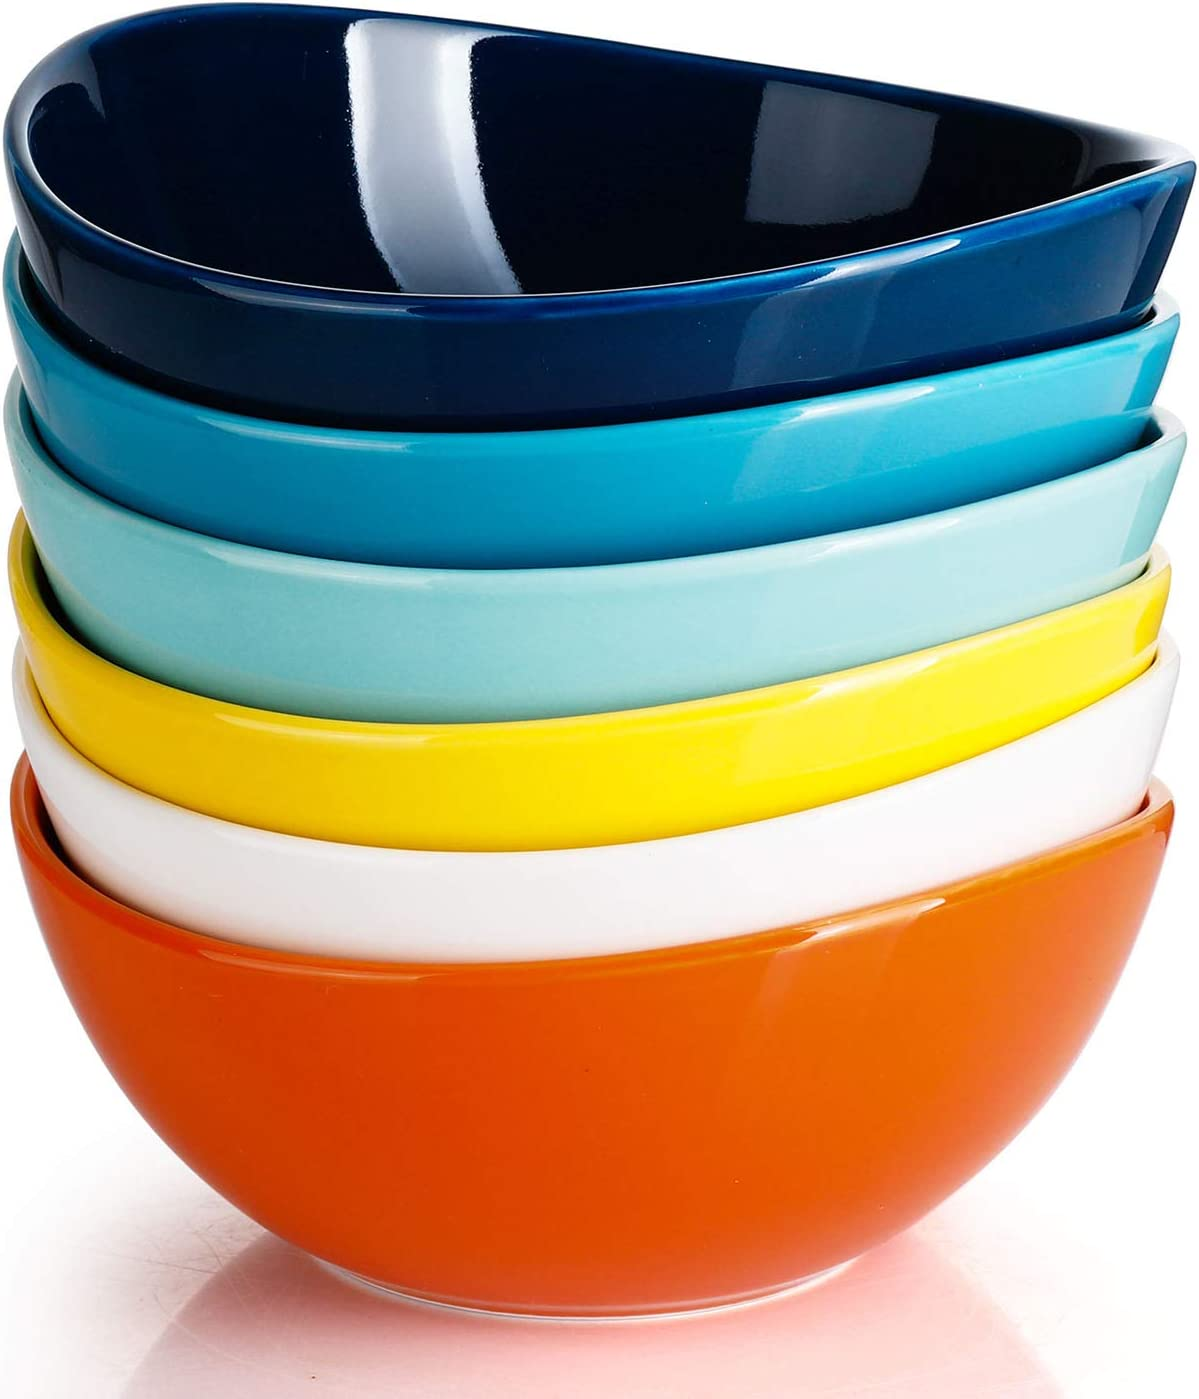 Sweese 103.002 Porcelain Bowls - 28 Ounce for Cereal, Salad and Desserts - Set of 6, Hot Assorted Colors